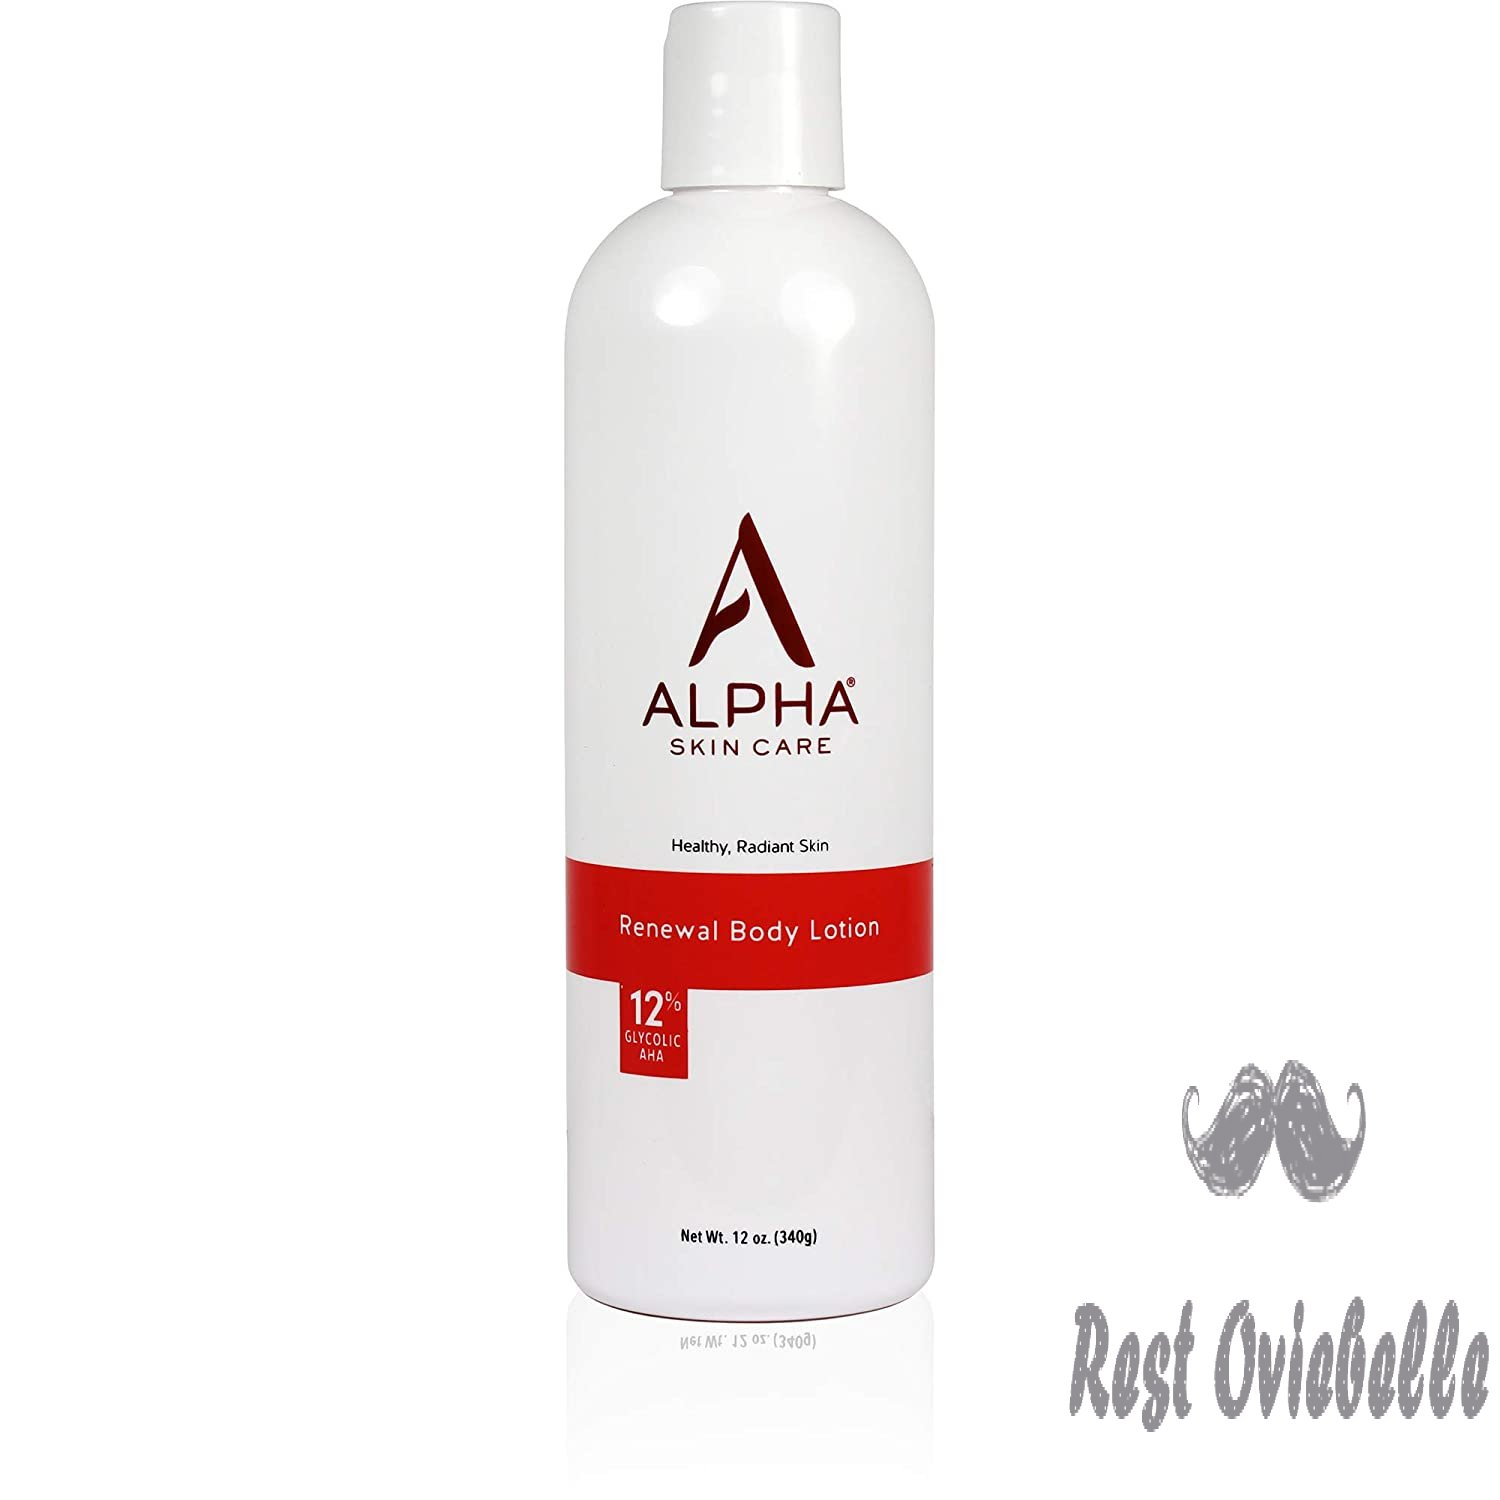 Alpha Skin Care Renewal Body